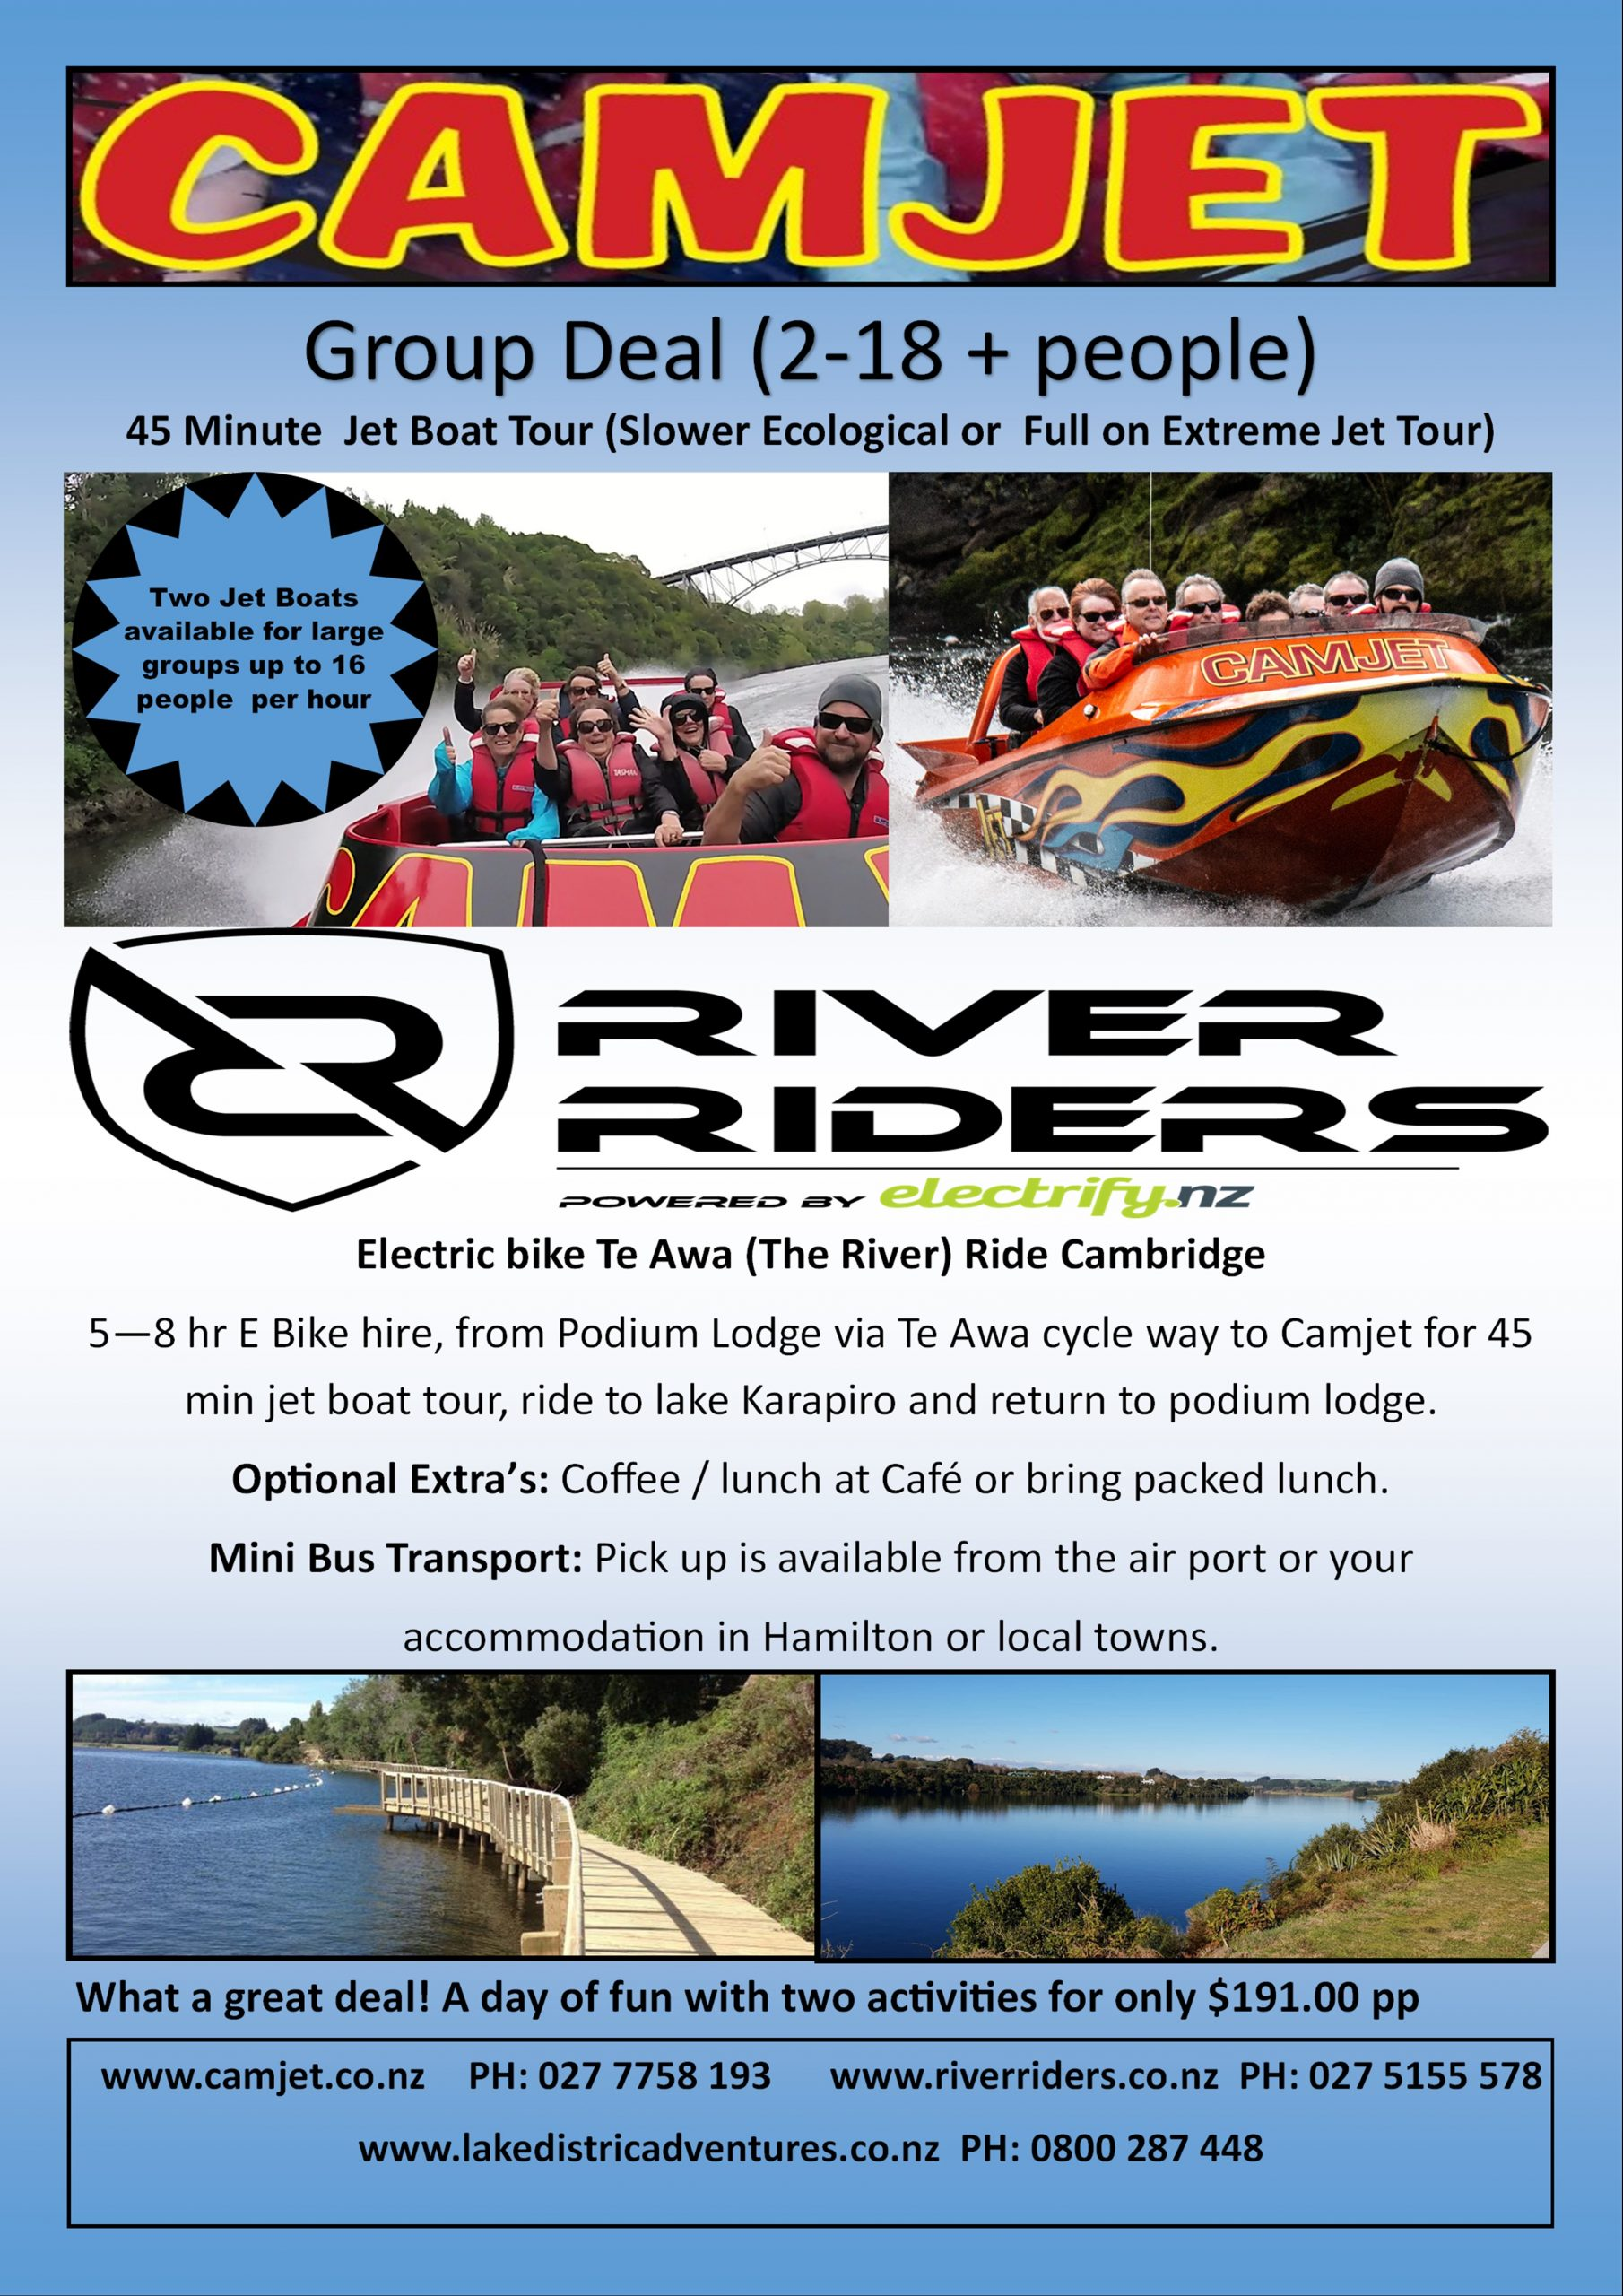 Things to do in cambridge jet boat and e bike combo $191 per person